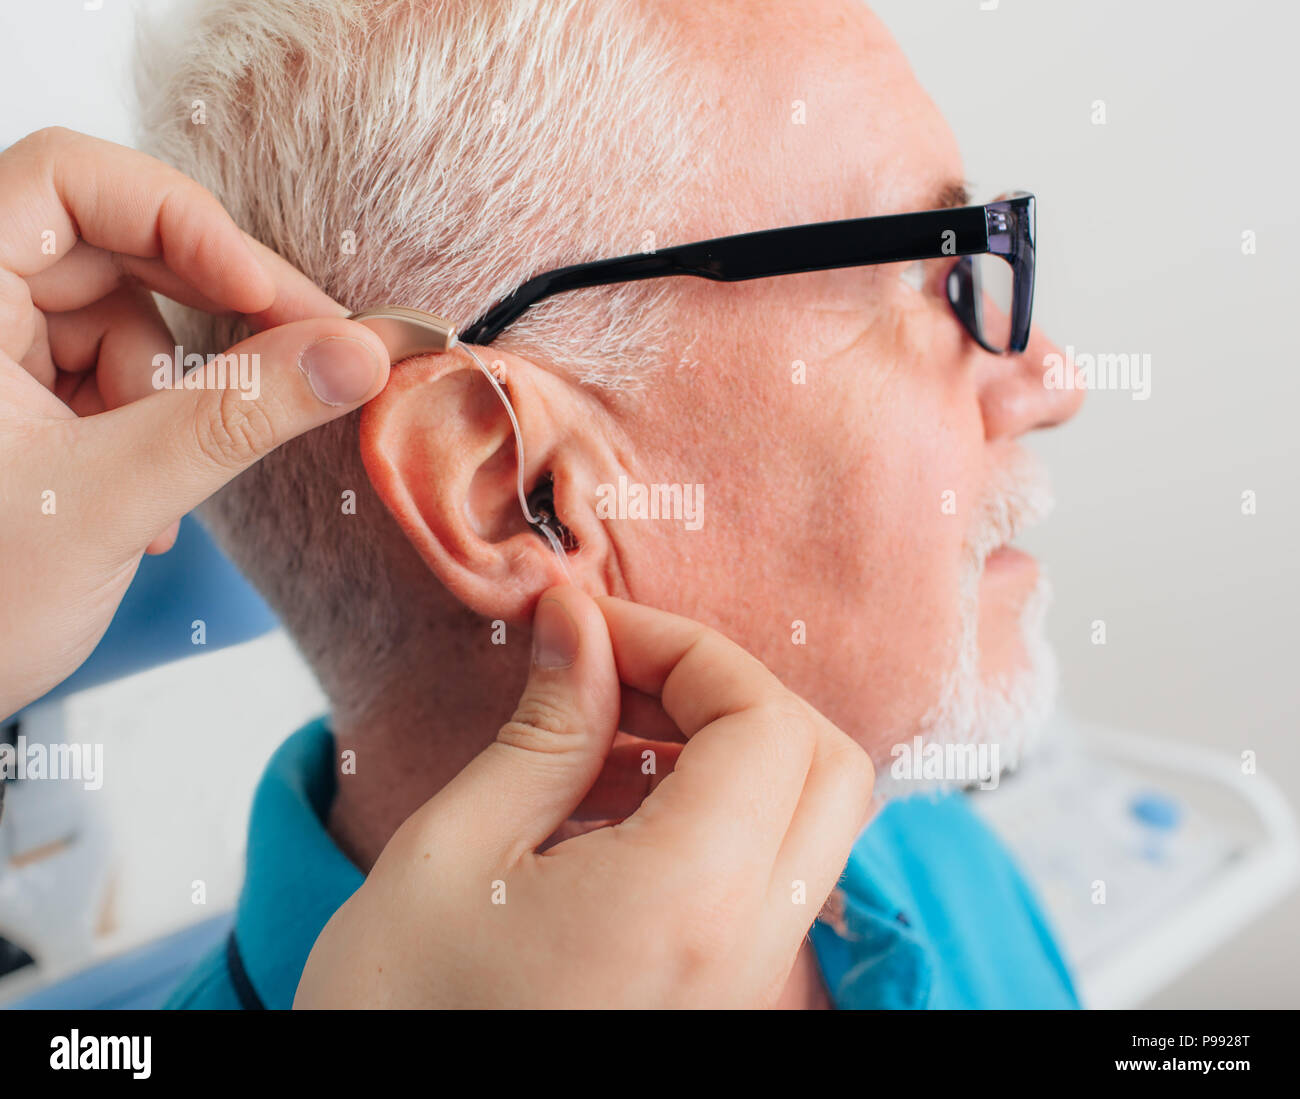 adjusting of a hearing aid for an aged man - Stock Image